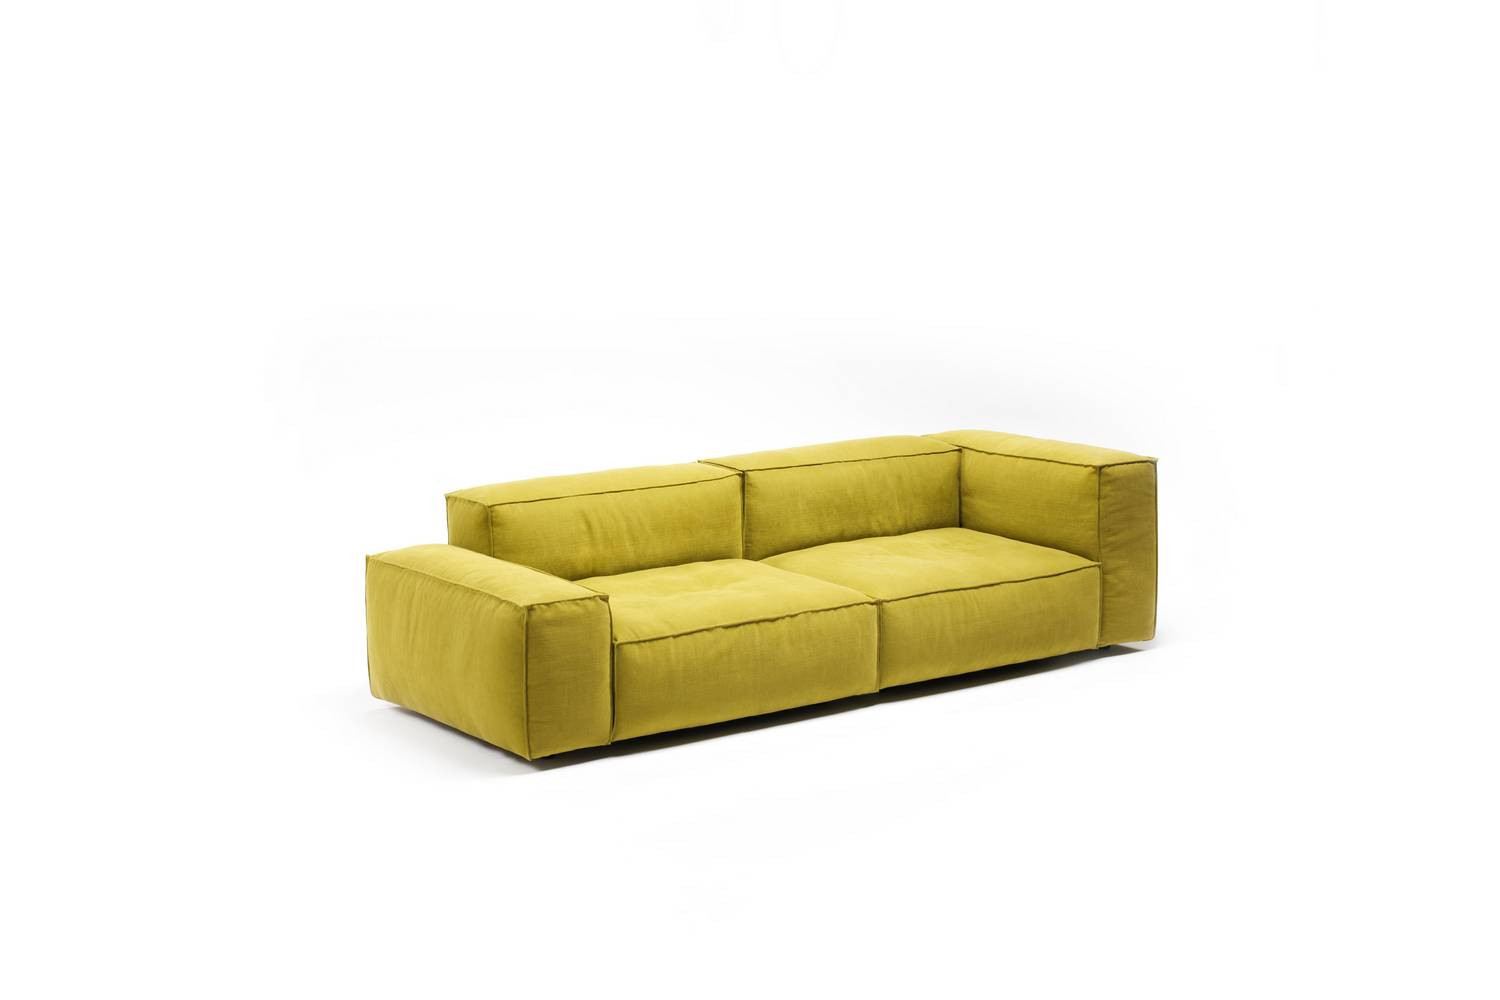 Living Divani Sofa Price Neowall Sofa By Piero Lissoni For Living Divani Space Furniture